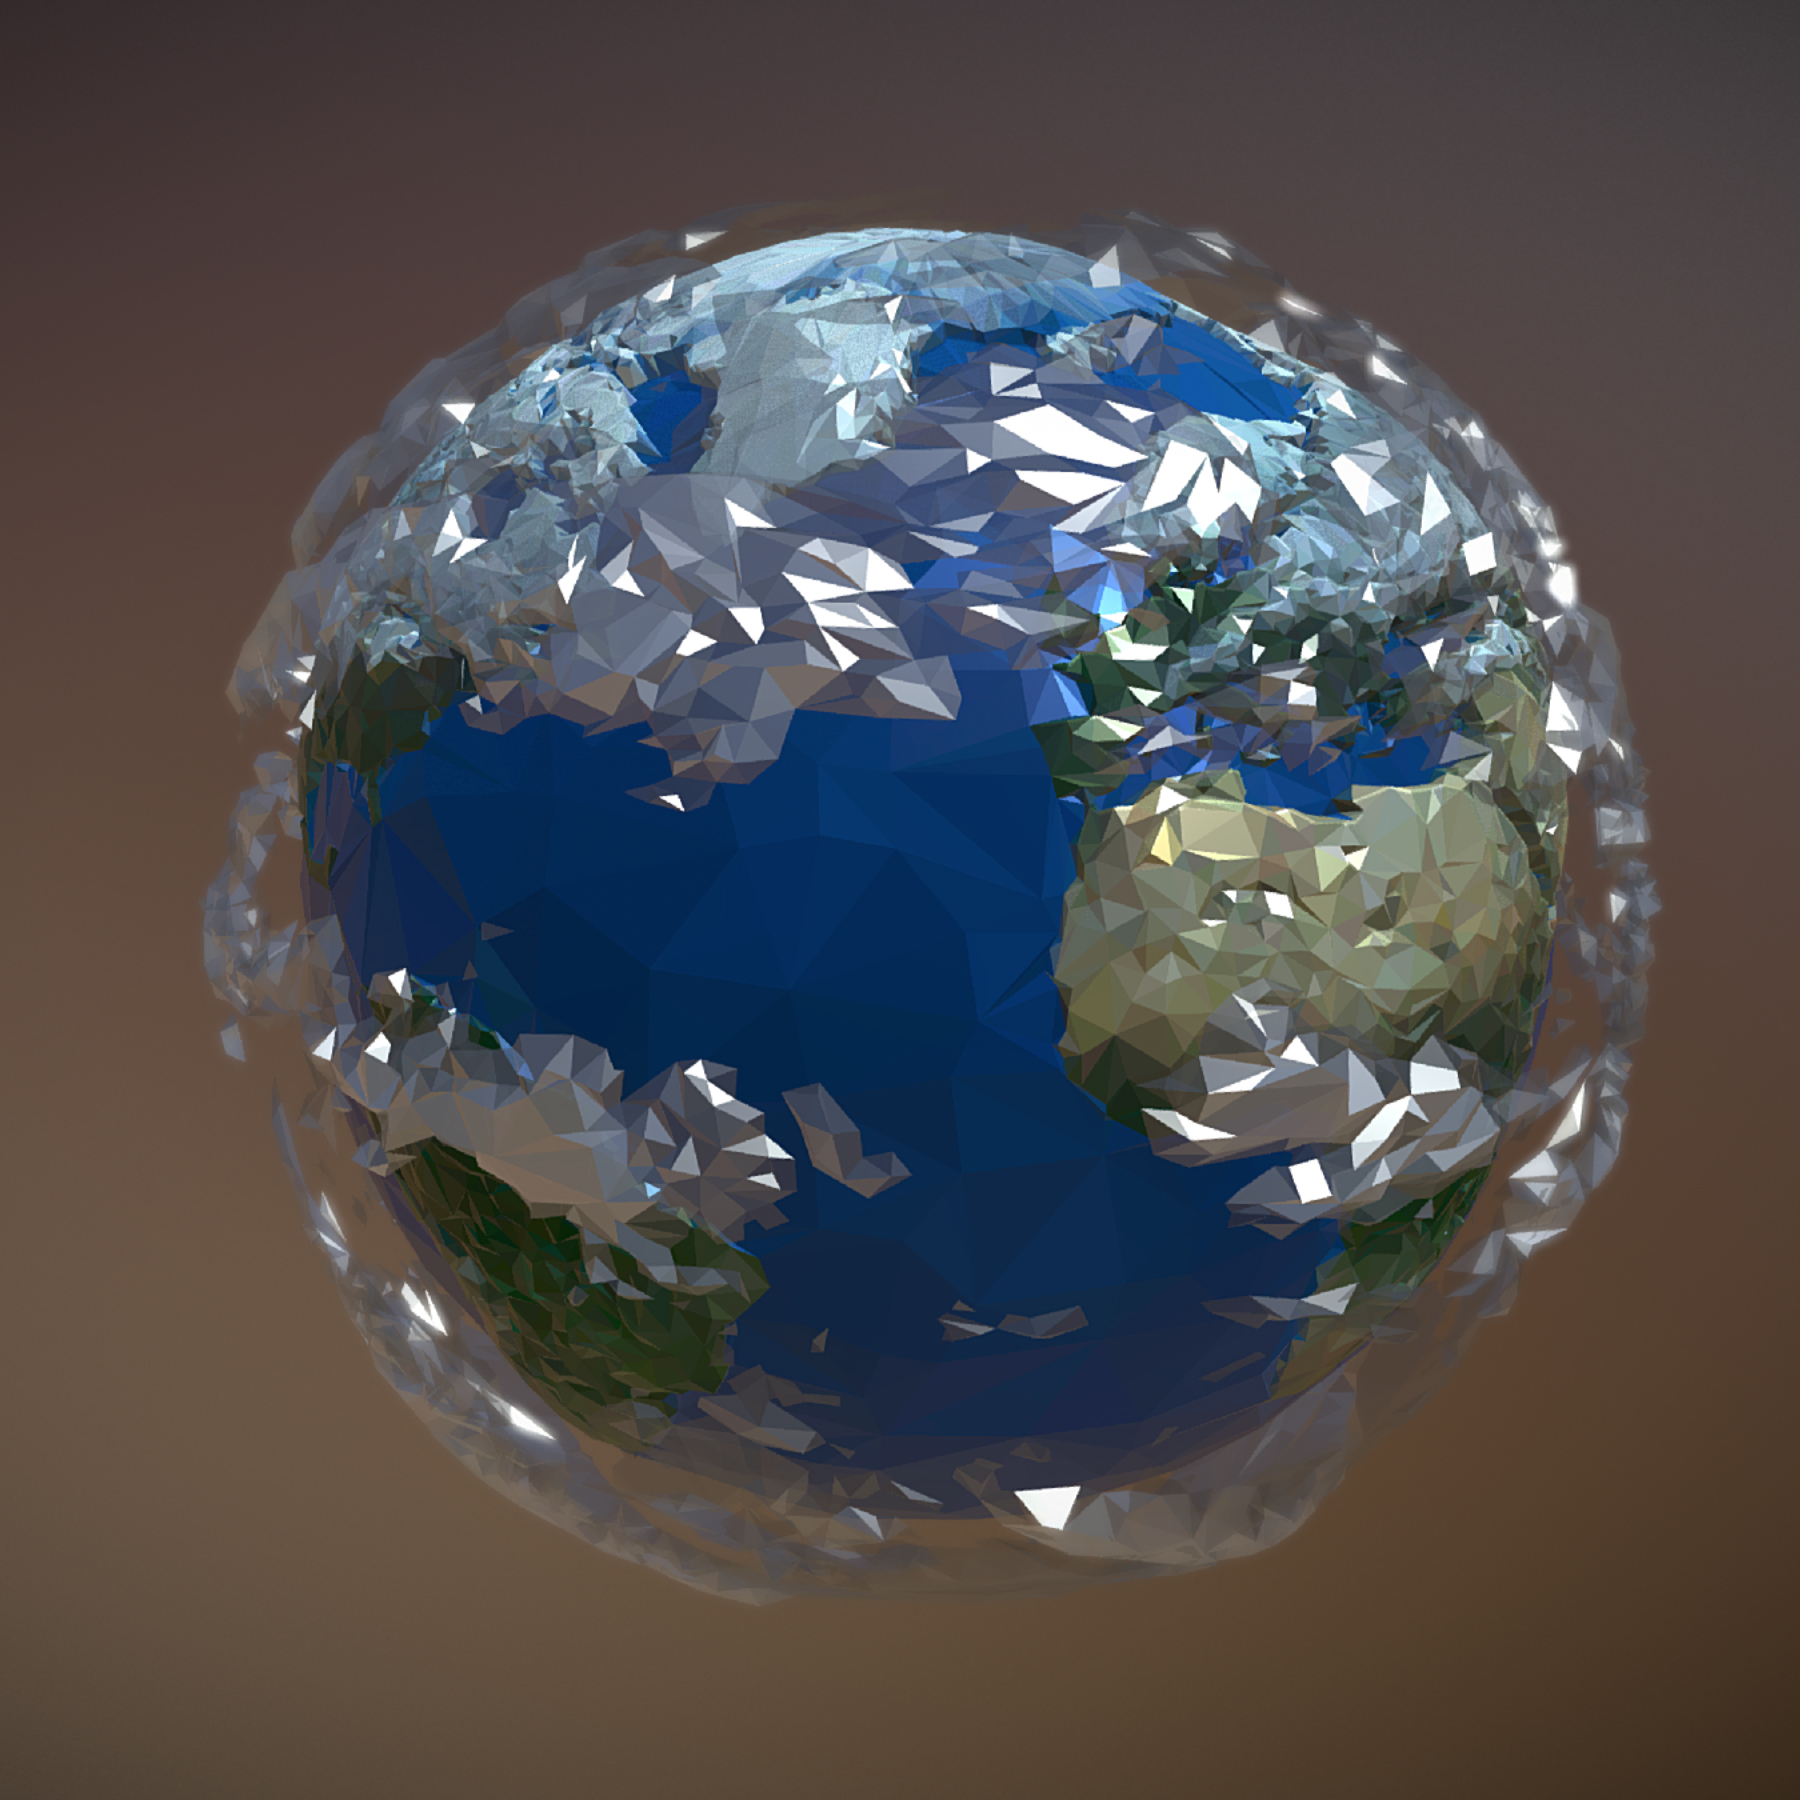 animated planet earth 3d model 3ds max fbx ma mb tga targa icb vda vst pix obj 271047